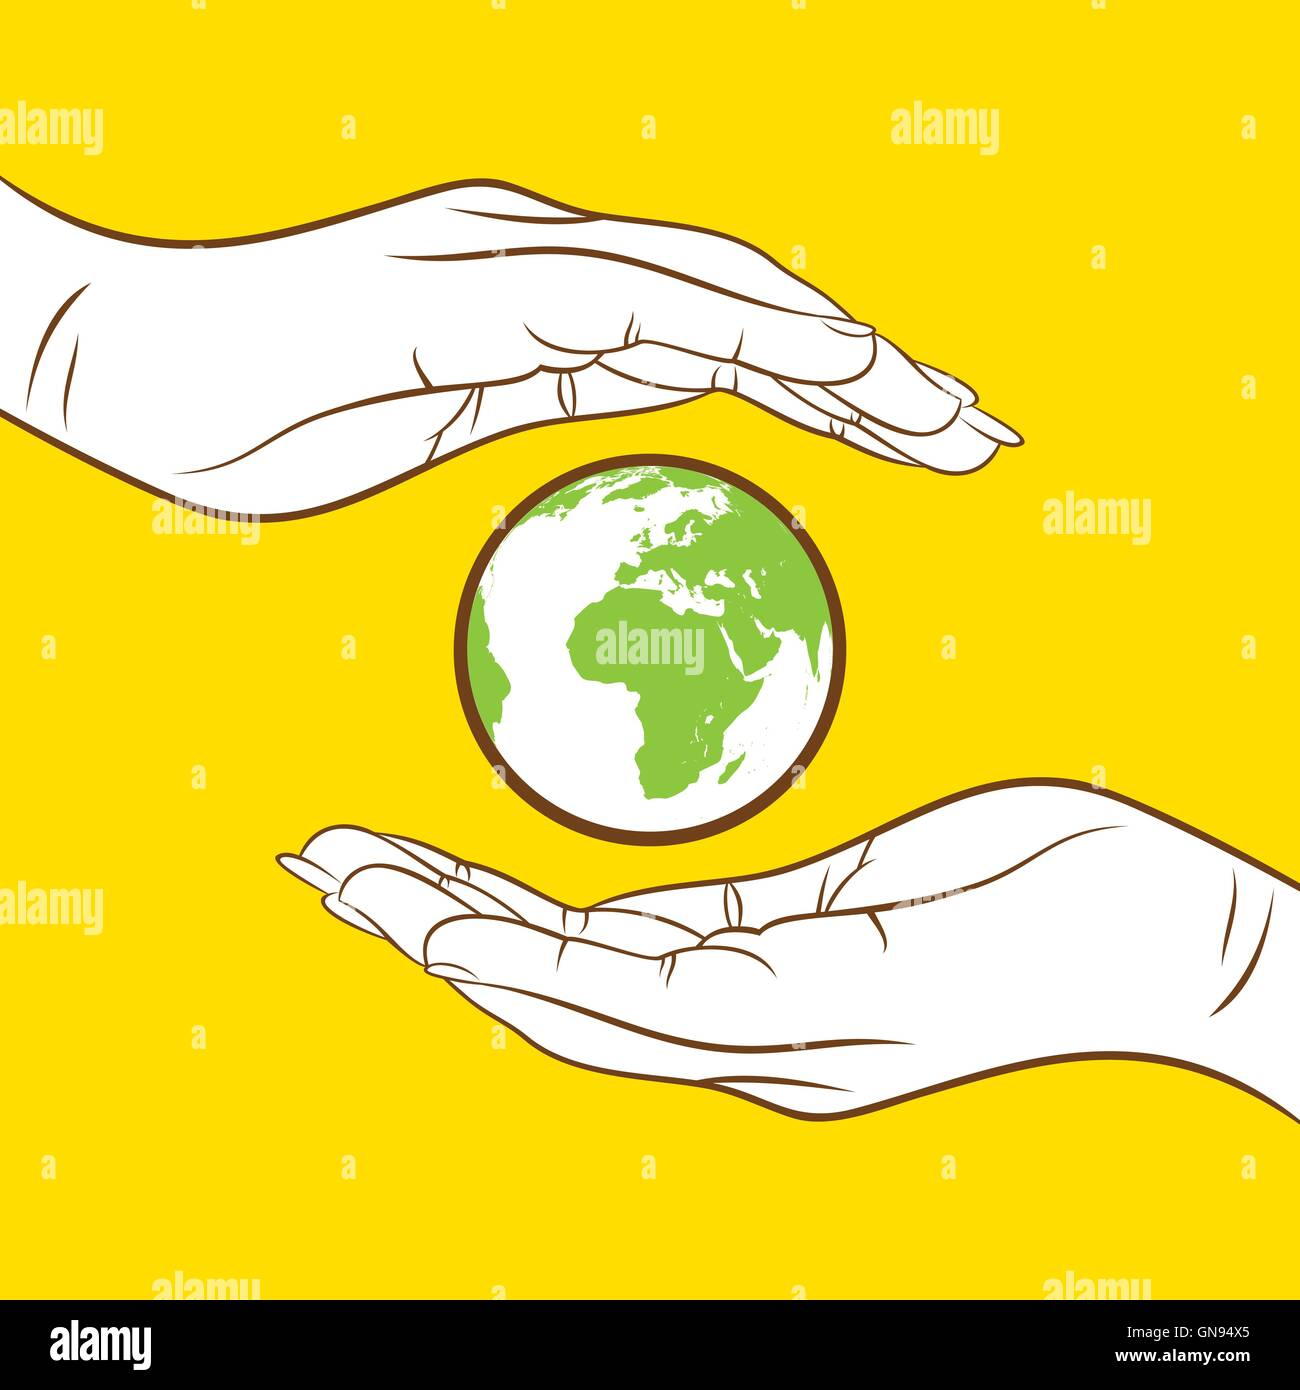 save earth and go green concept design - Stock Image